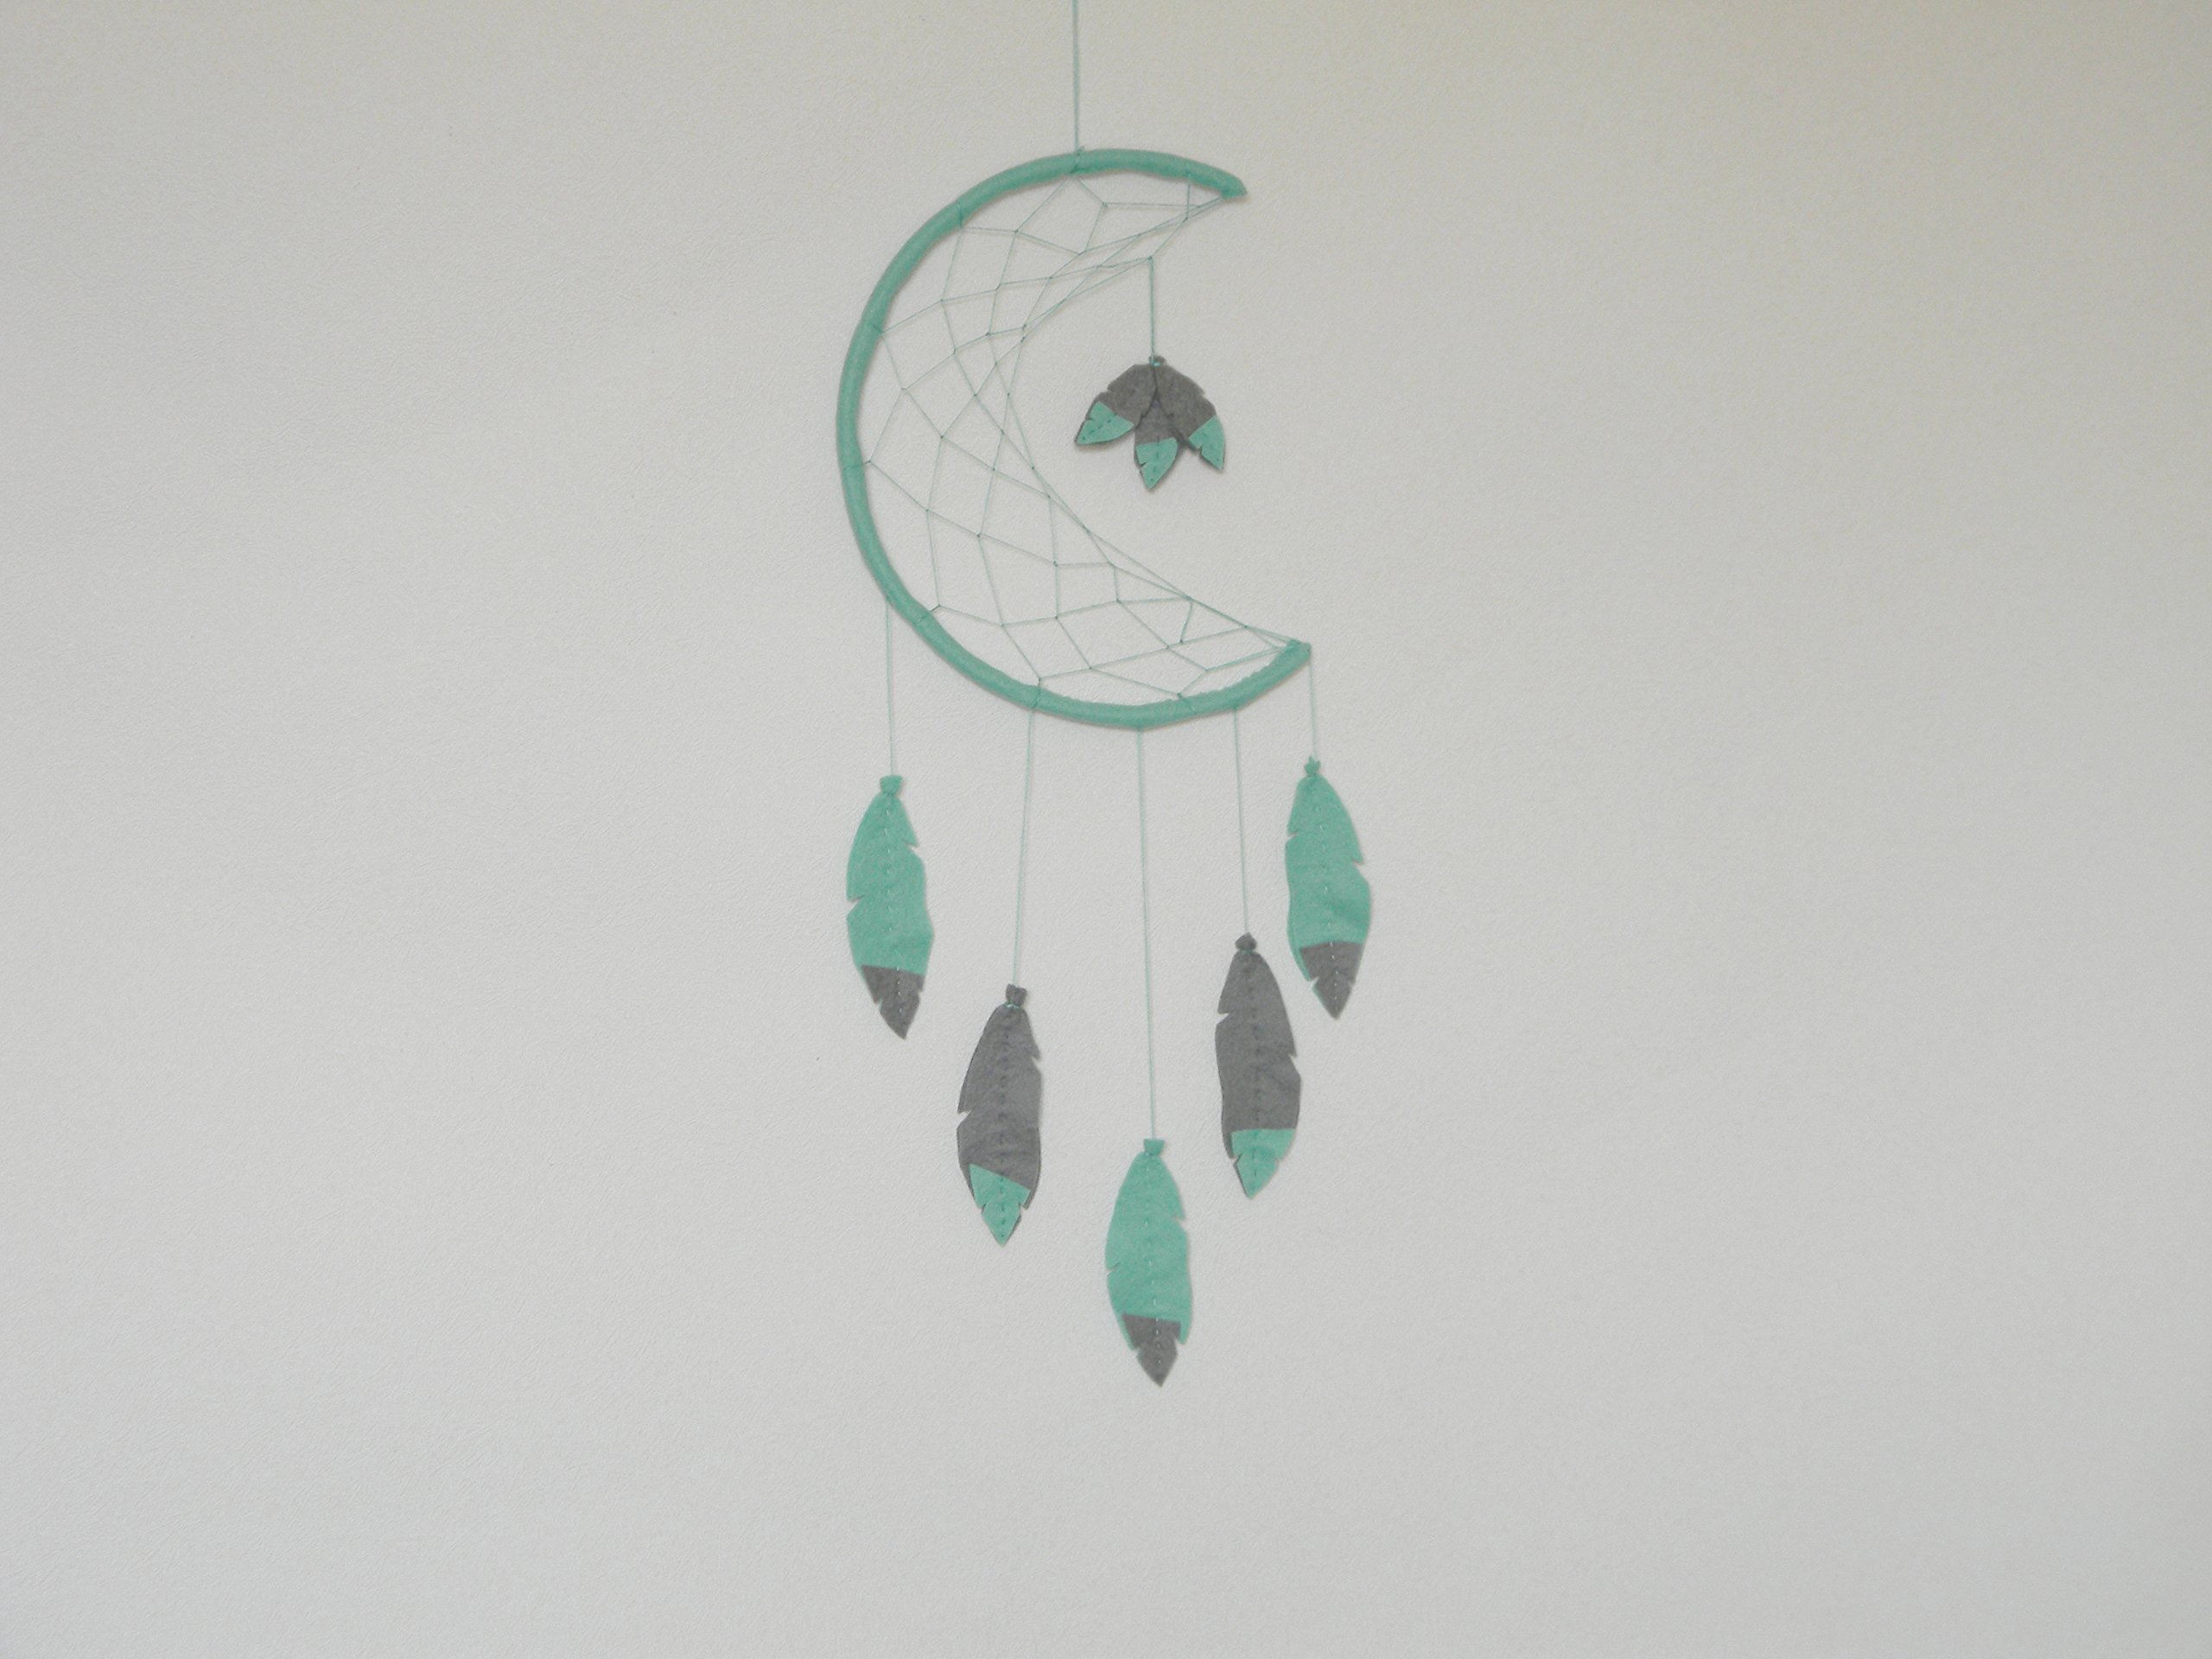 8b6eac4ae59 Get Quotations · Mint Grey Dream catcher mobile Dream catcher wall hanging  Felt dream catcher decor Boho dreamcatcher Crescent